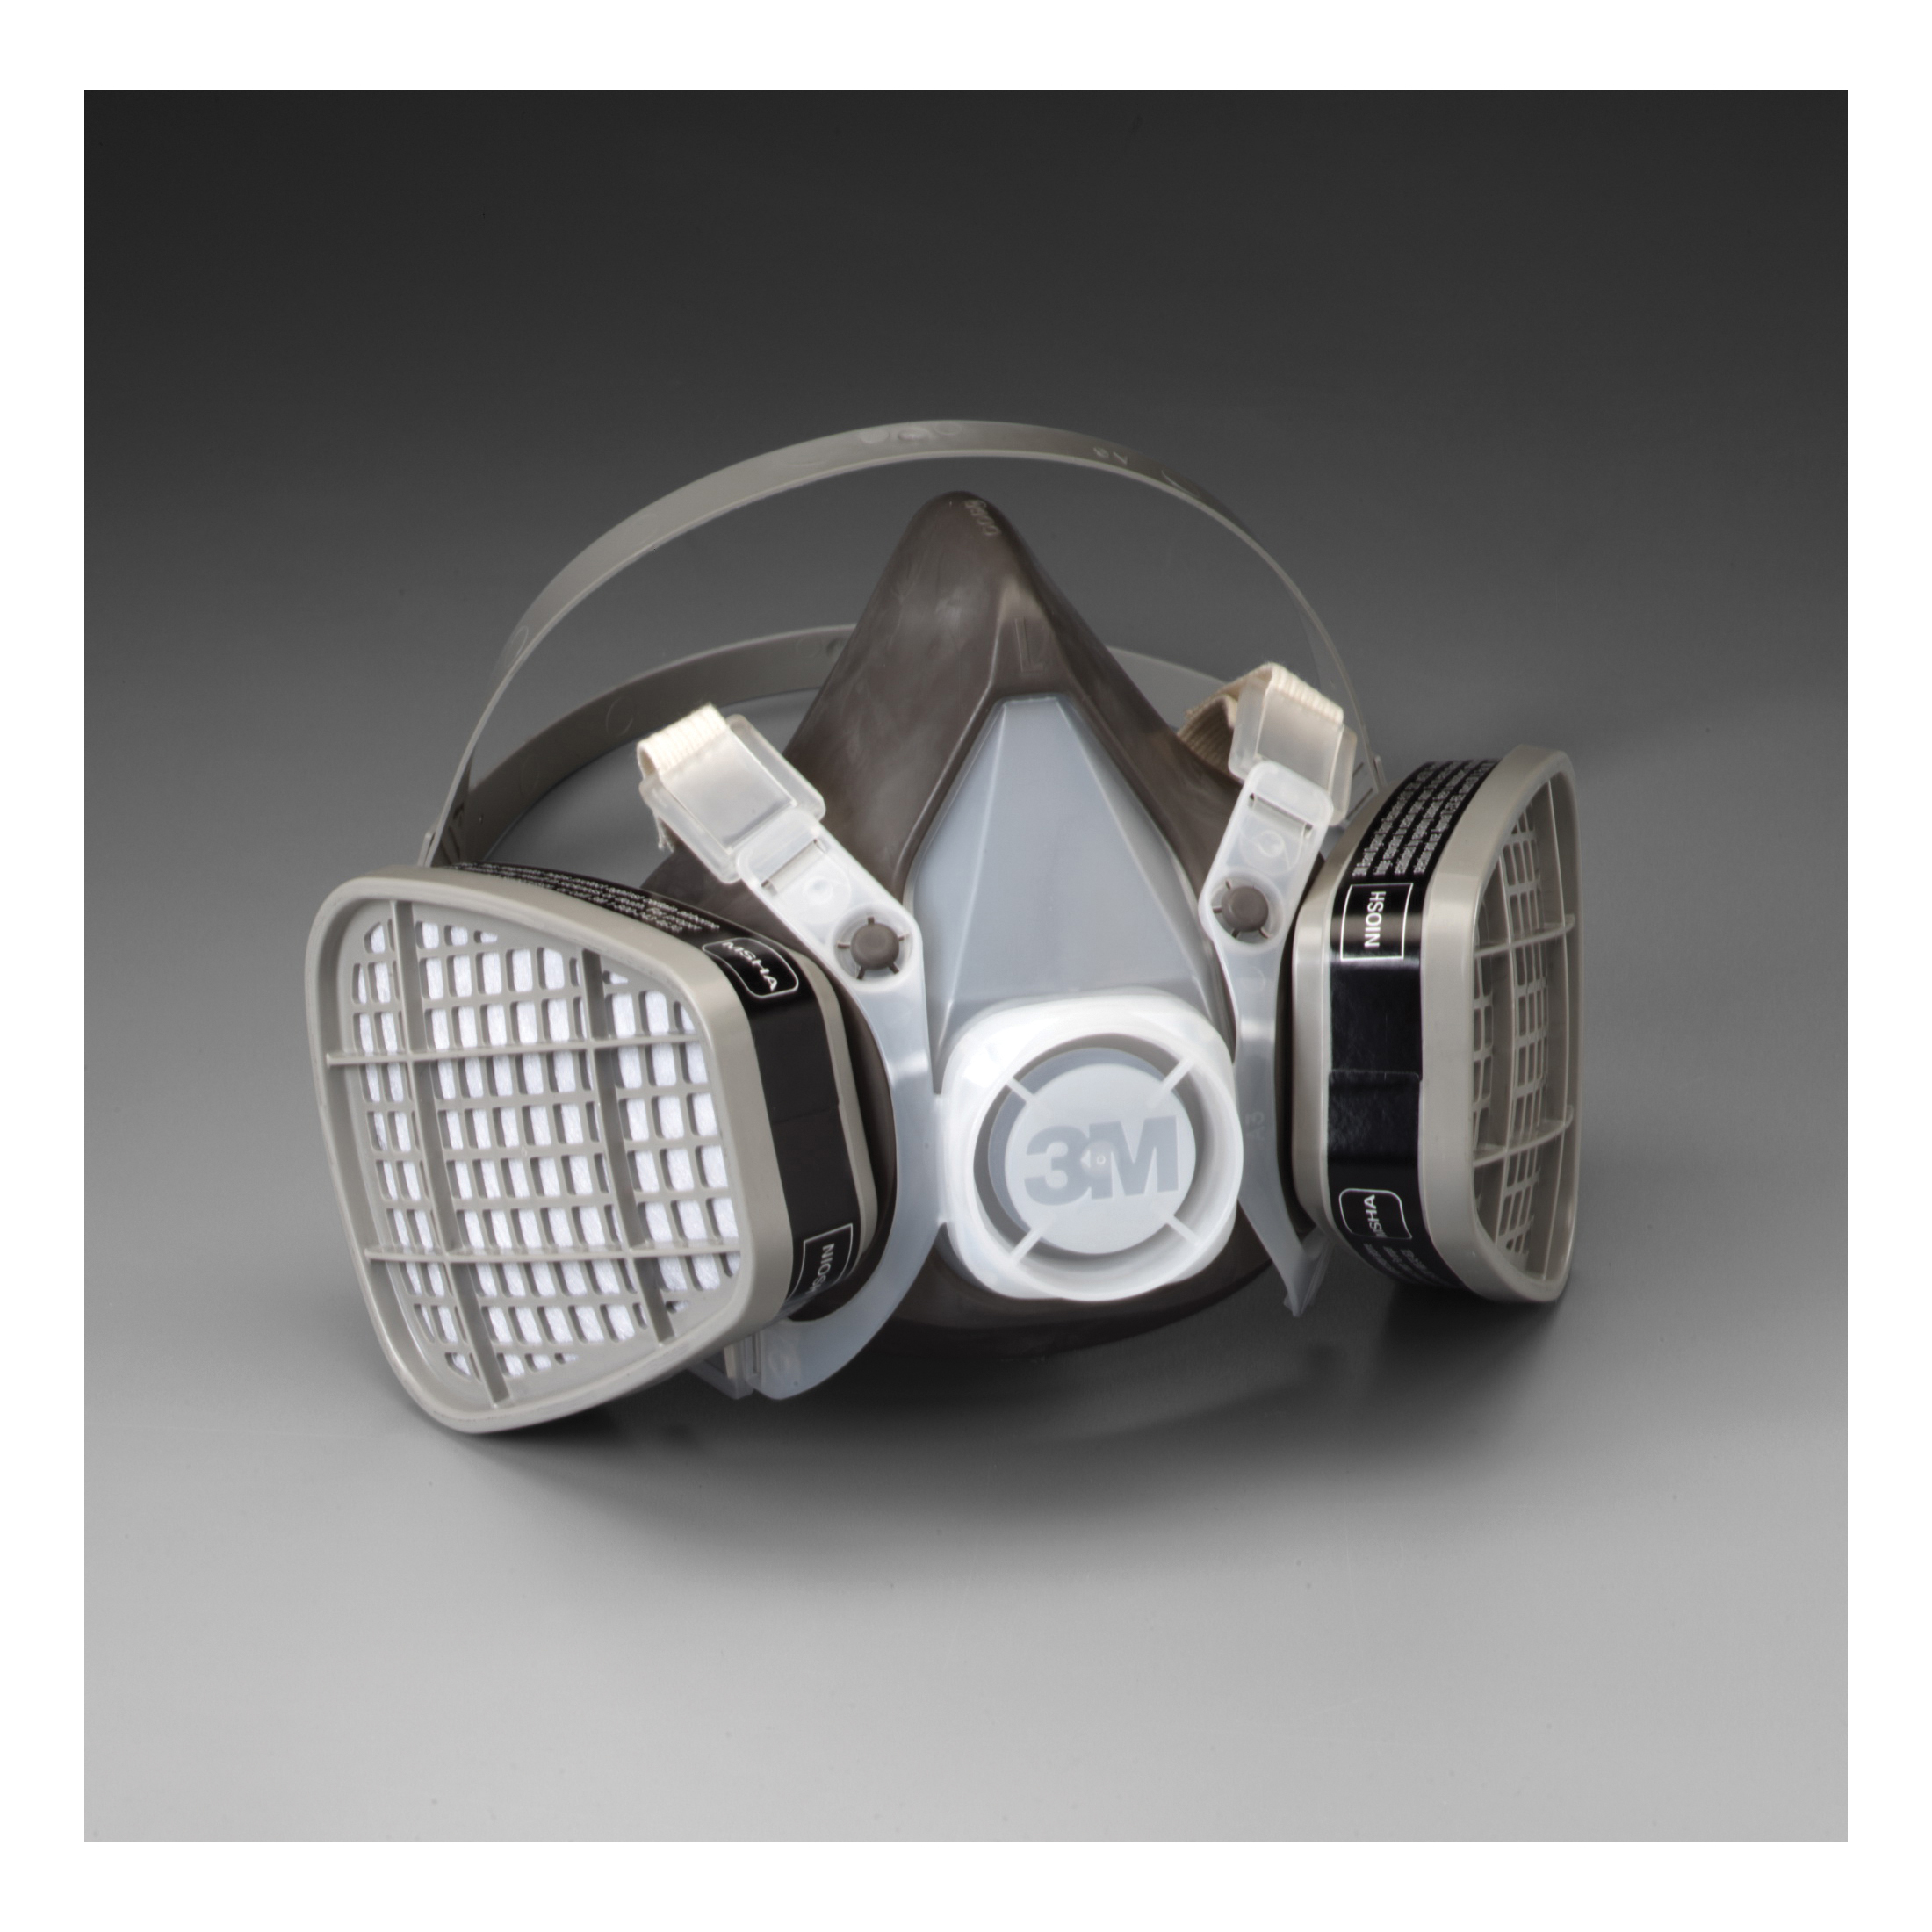 3M™ 051138-21577 5000 Disposable Half Facepiece Respirator Assembly, L, Resists: Acid Gas, Chlorine, Hydrogen Chloride, Hydrogen Fluoride, Hydrogen Sulfide, Organic Vapors and Sulfur Dioxide